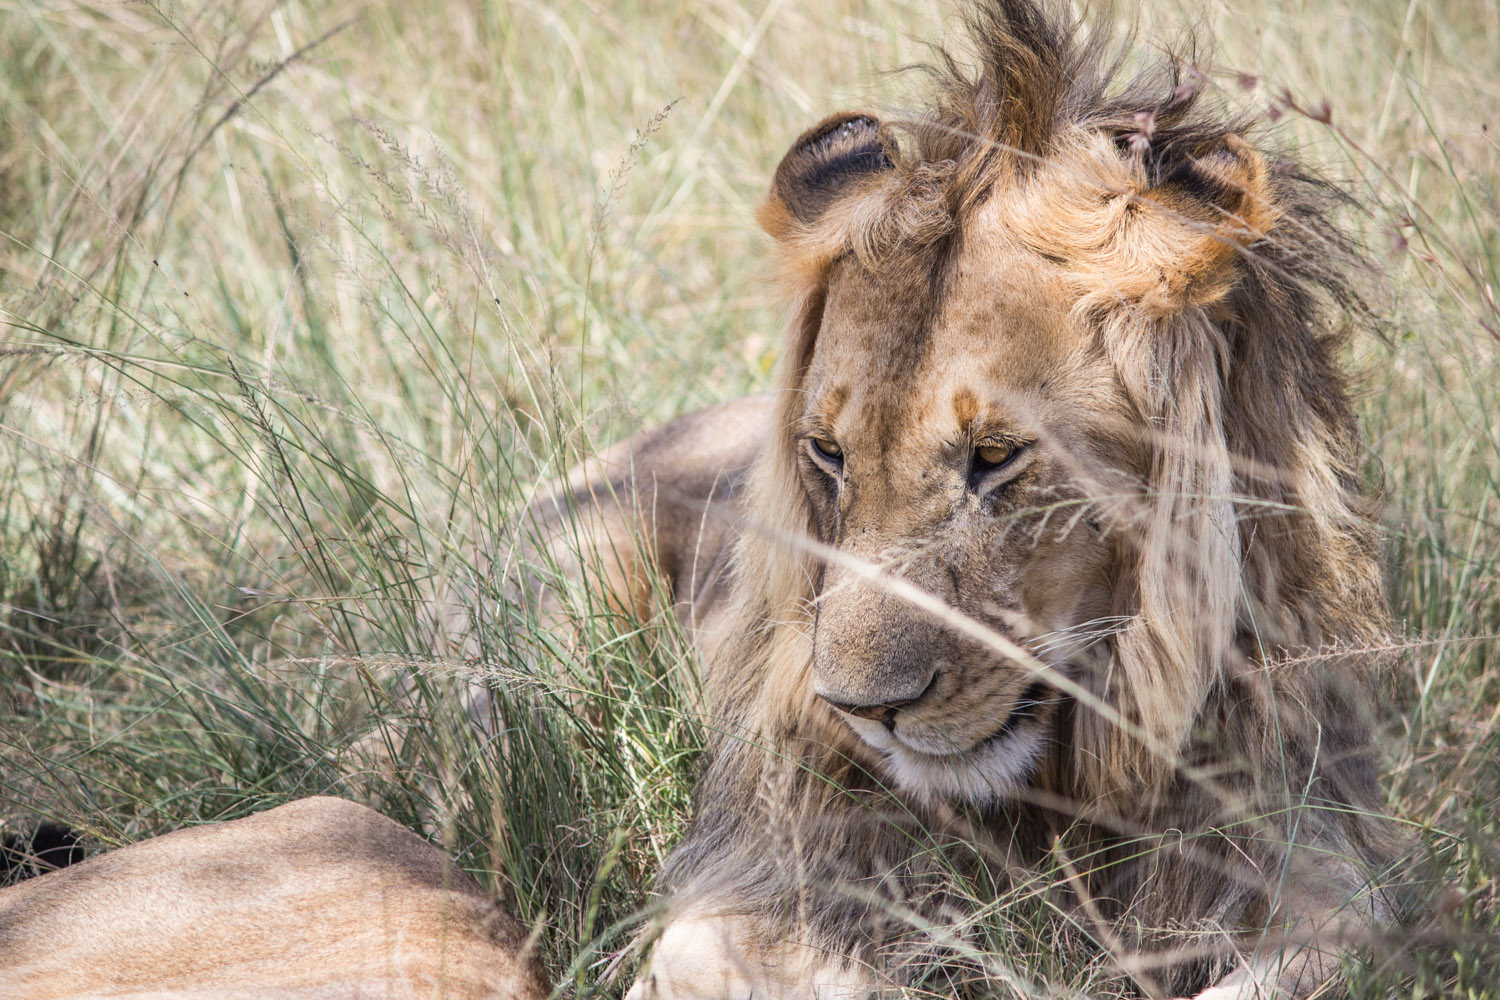 On safari we came across this pride of lions, dozing in the midday sun. Our van windows were open and I had this heart-pausing moment when I realised one of these lions could easily decide to spring into our vehicle should they choose. Thankfully, they didn't • Maasai Mara, Kenya •